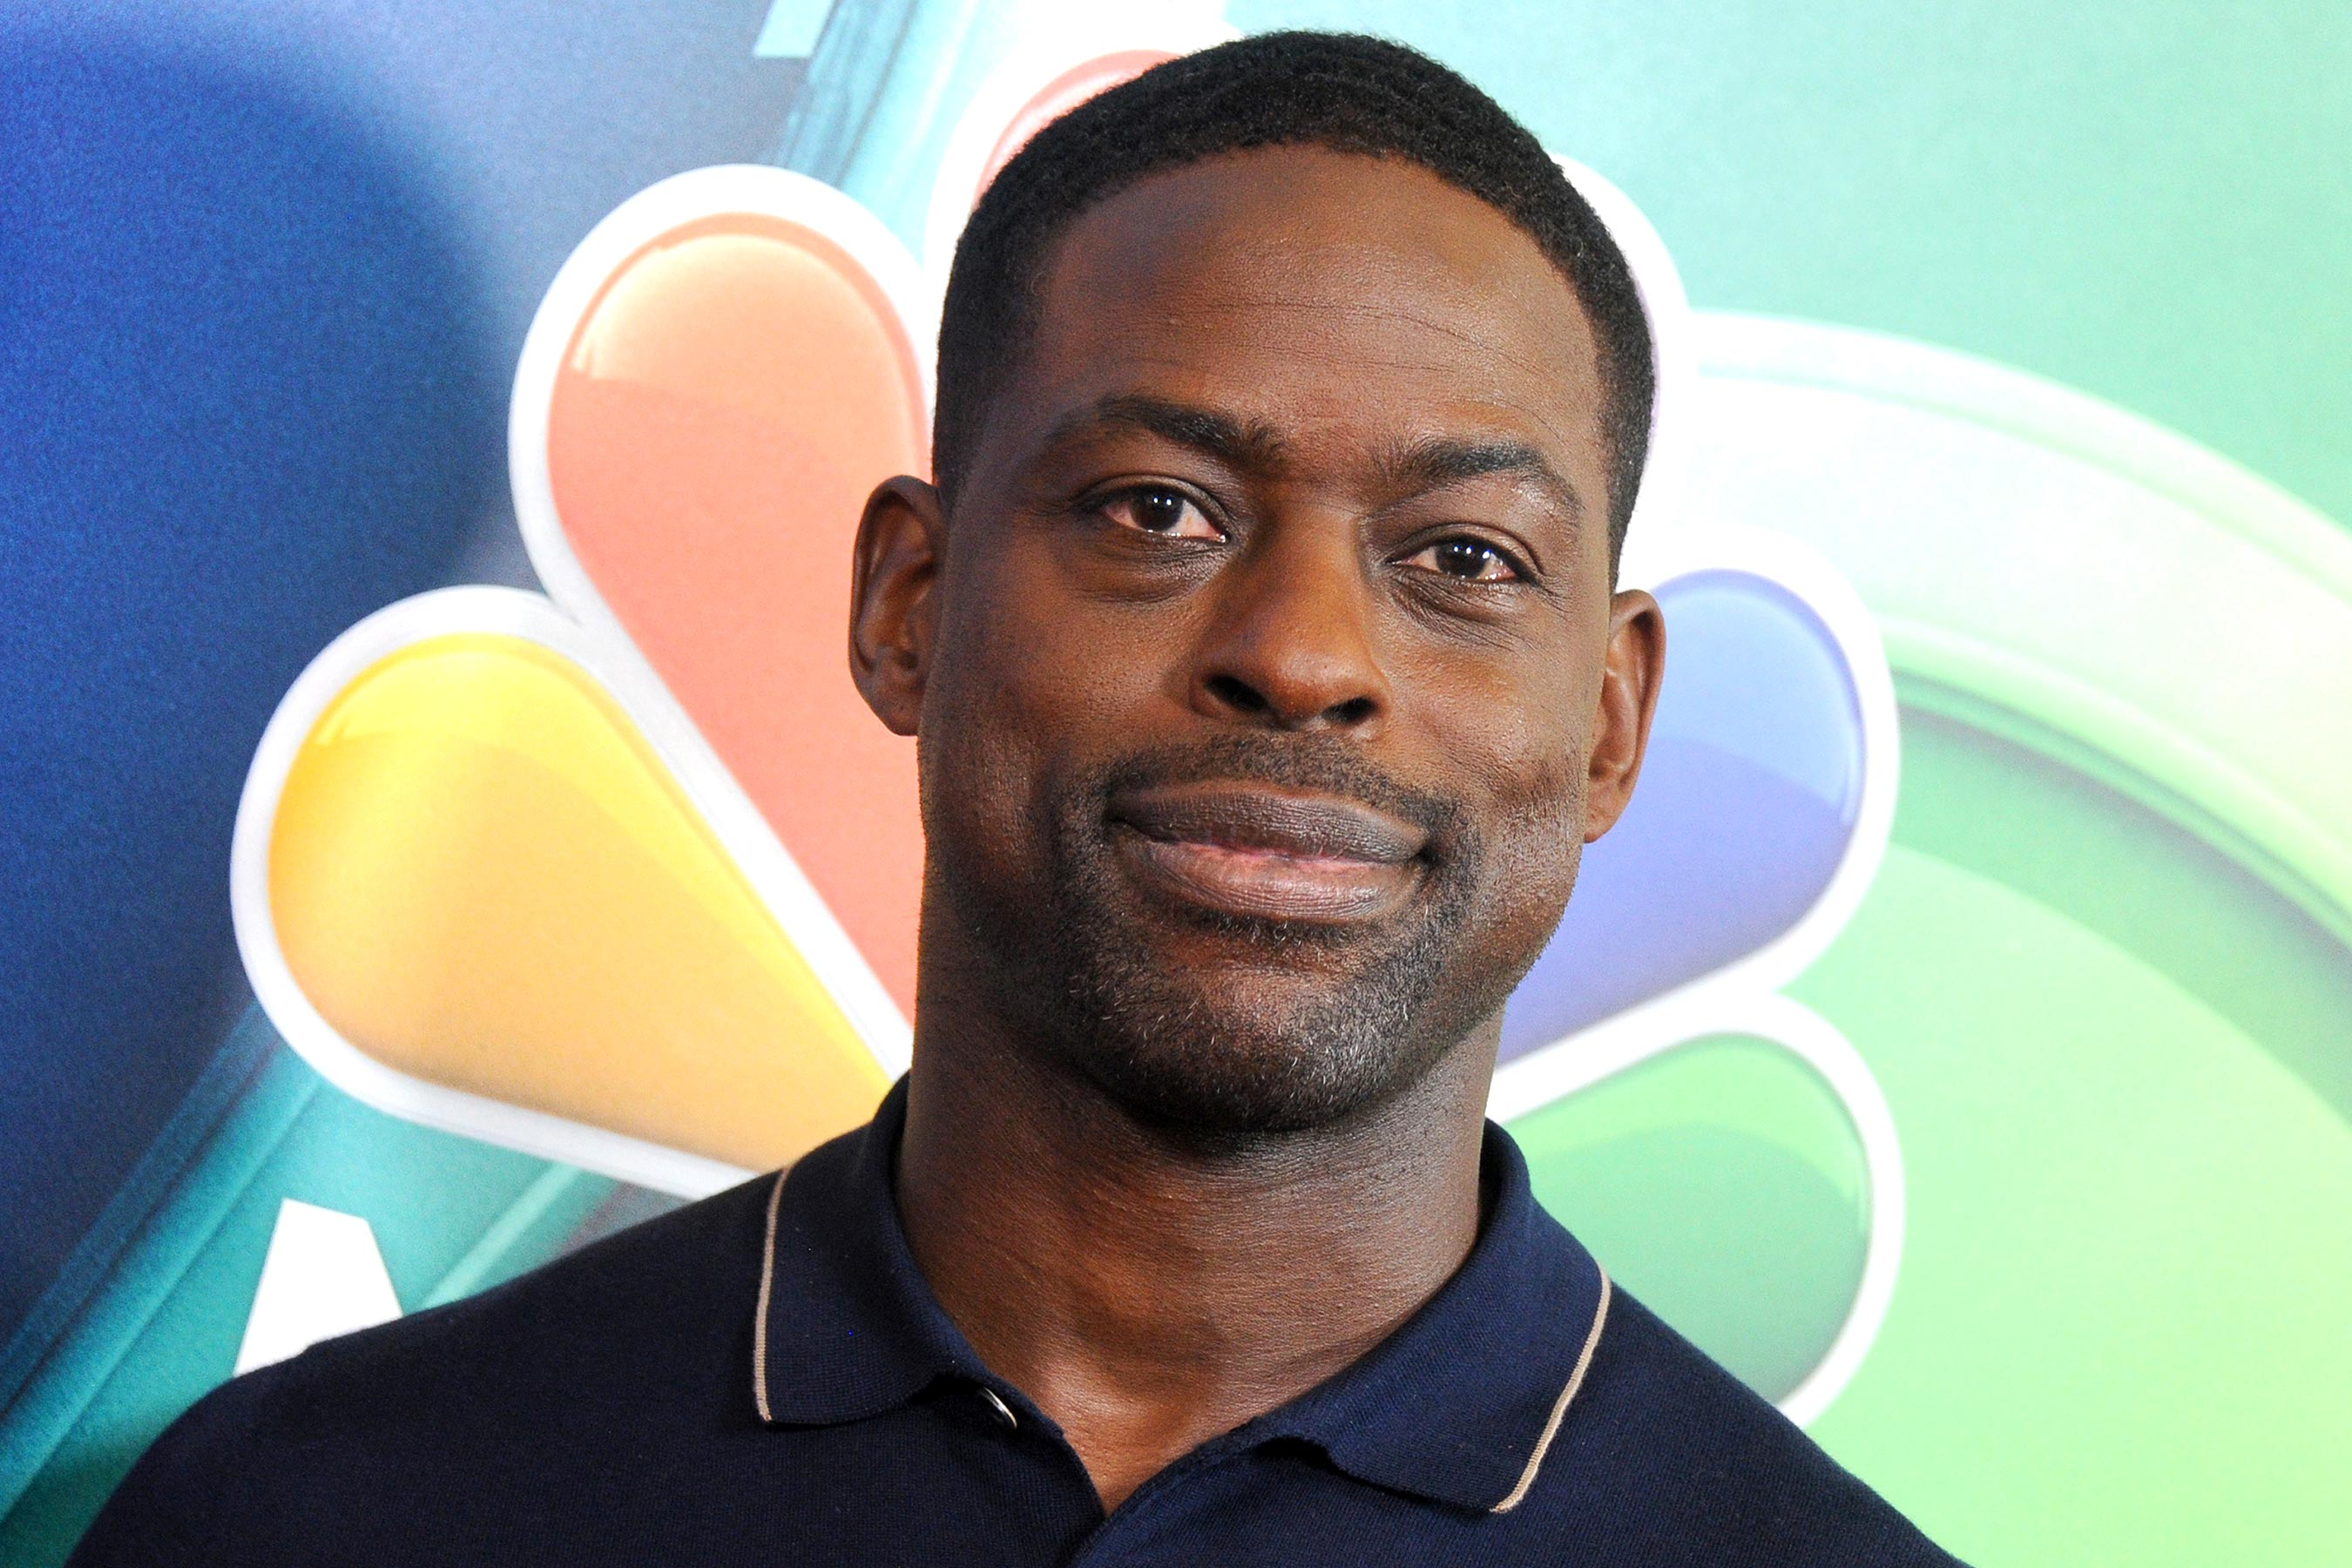 Olympics: This Is Us star Sterling K. Brown to voice NBC's opening film